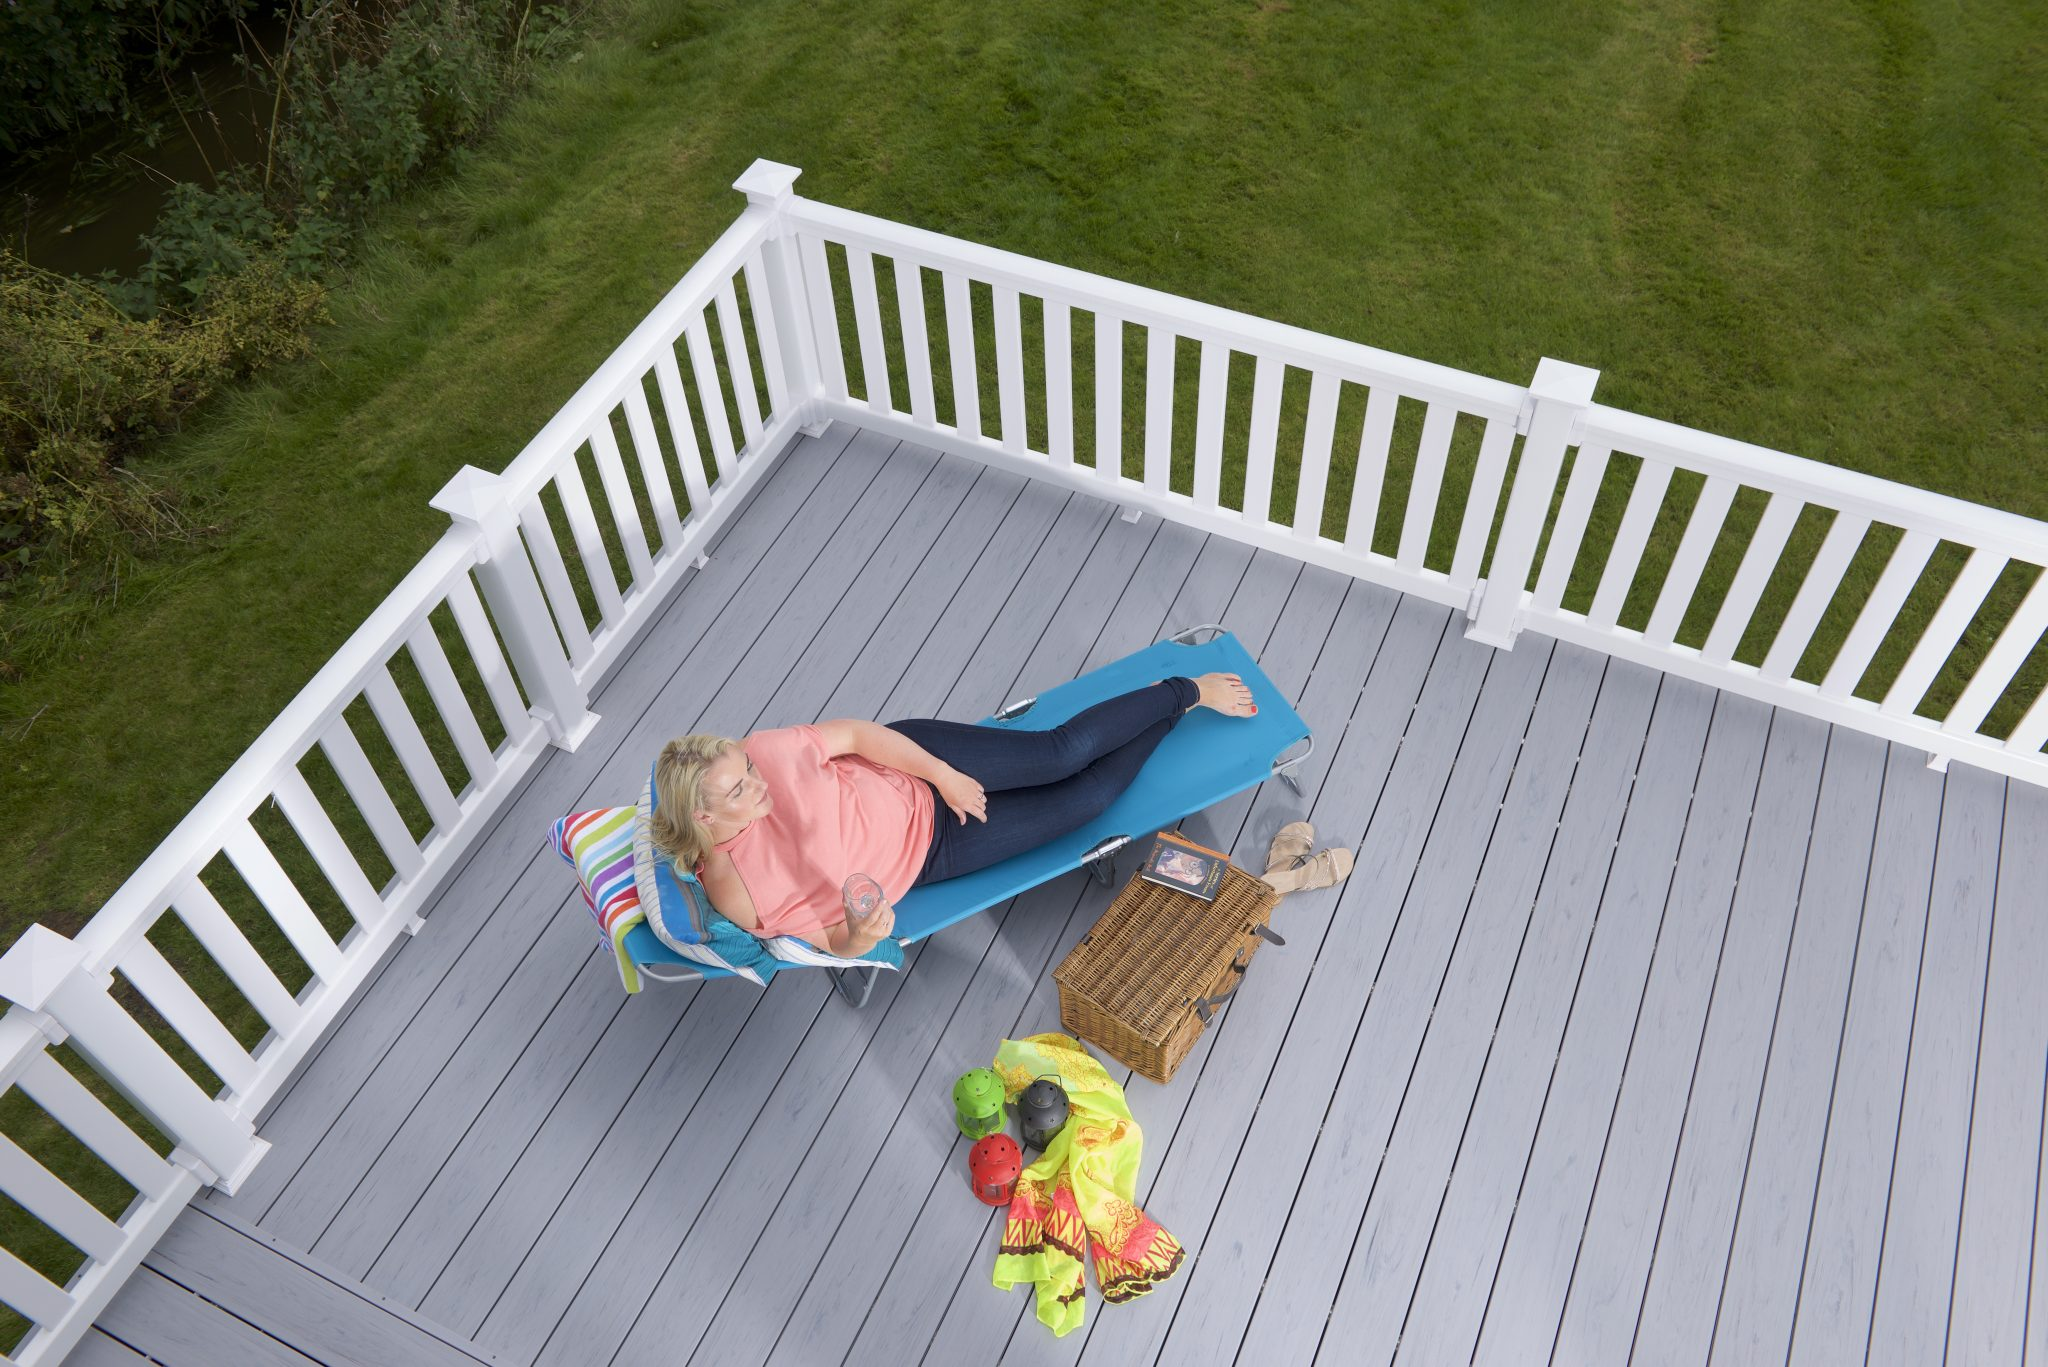 Why do we use uPVC in decking